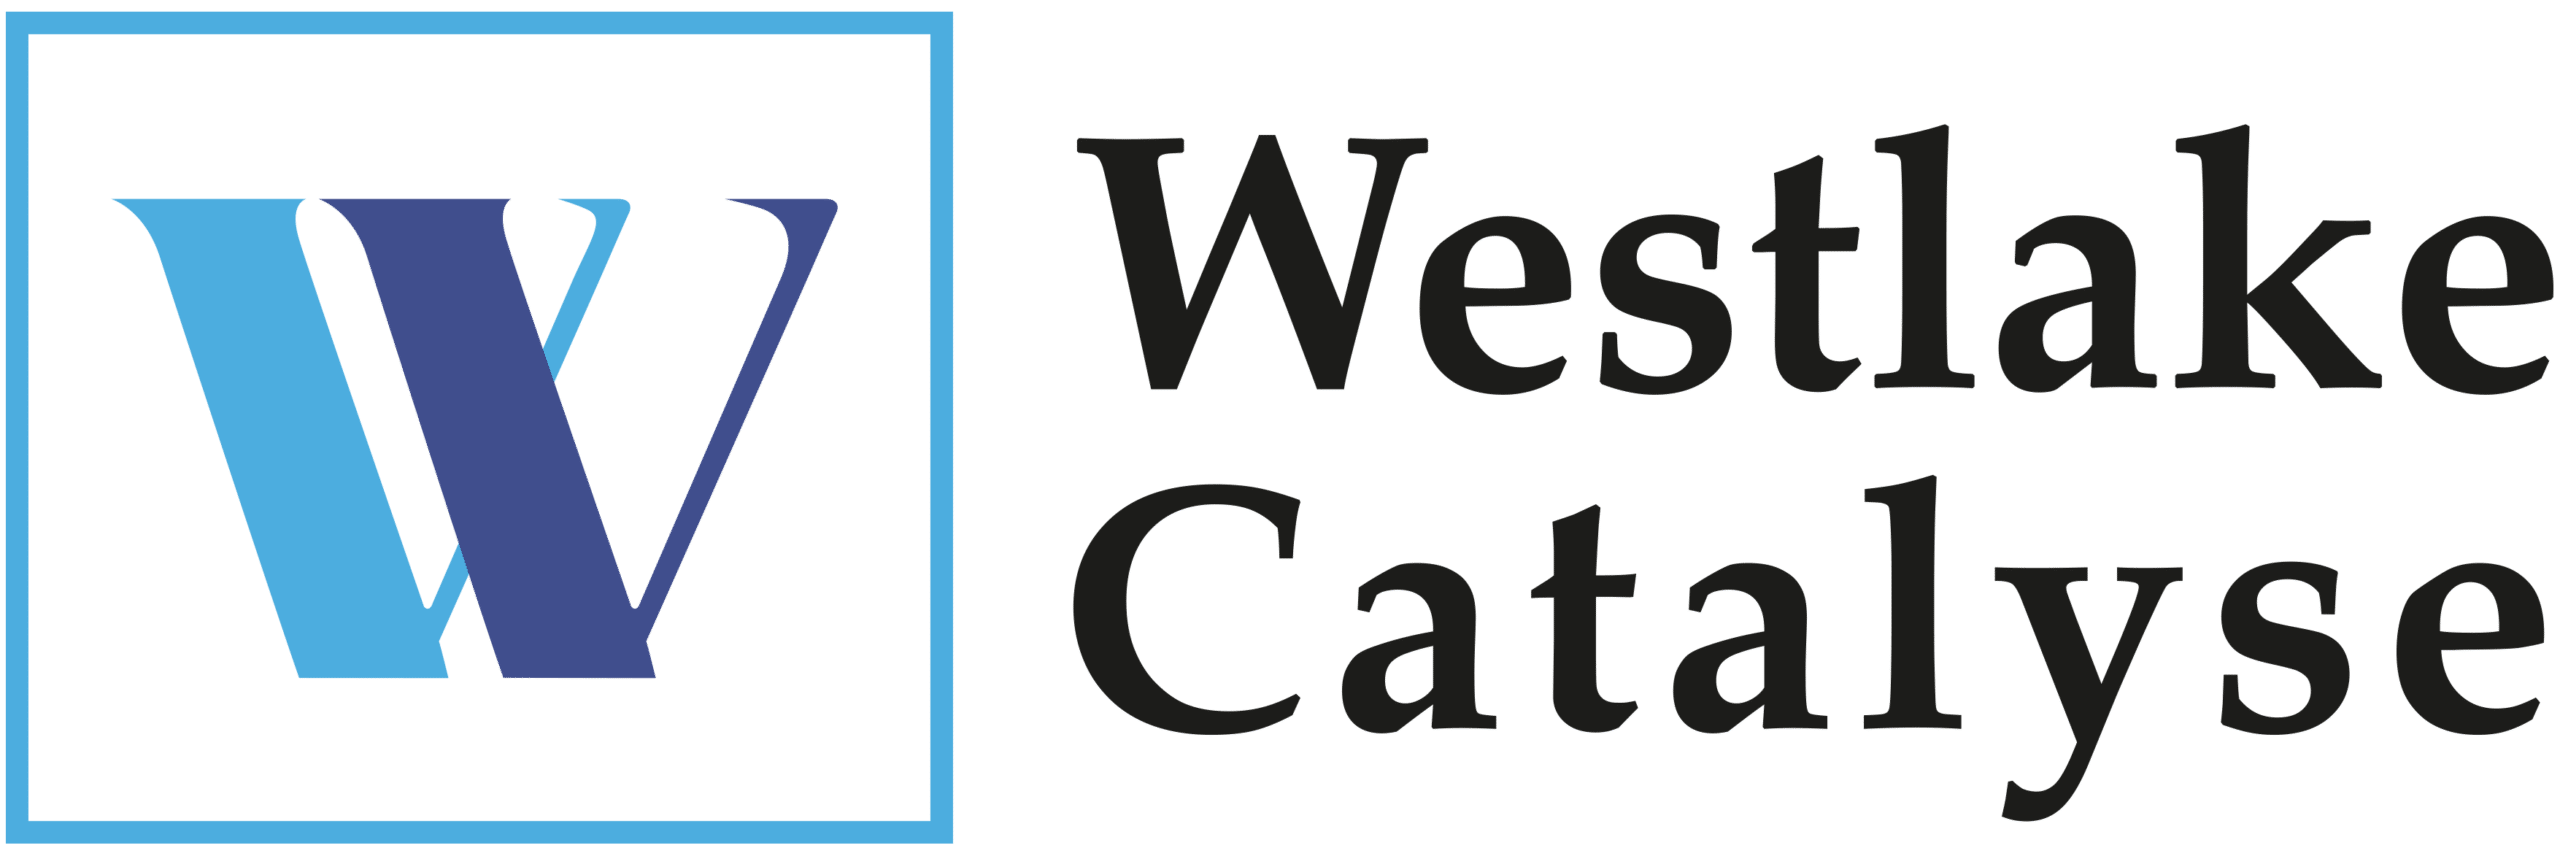 logo Westlake_Catalyse